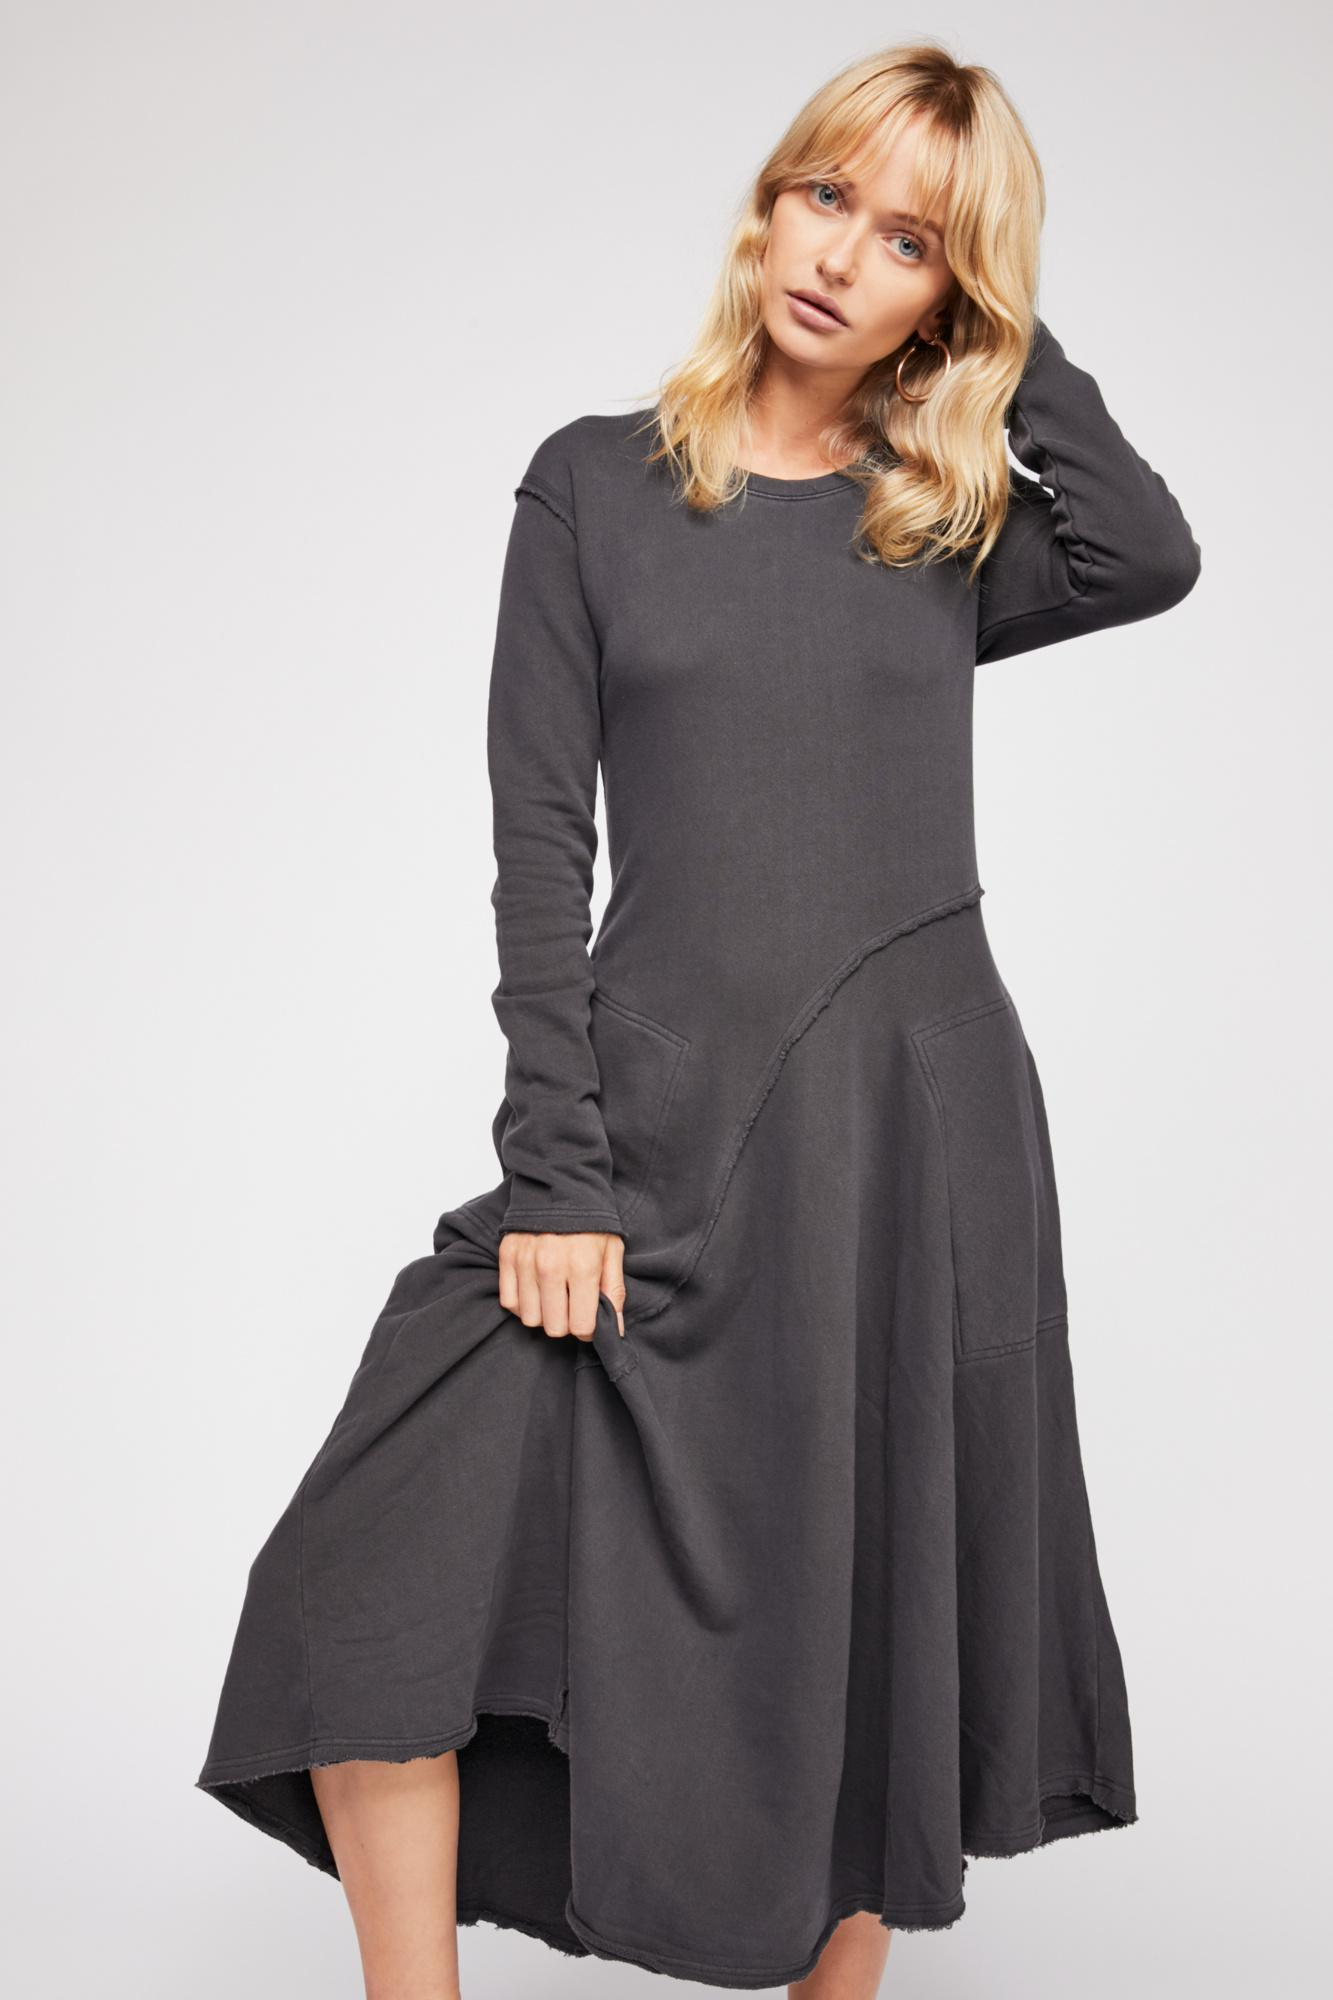 57bb1c9f86 Free People These Days Midi Dress By Fp Beach in Gray - Lyst